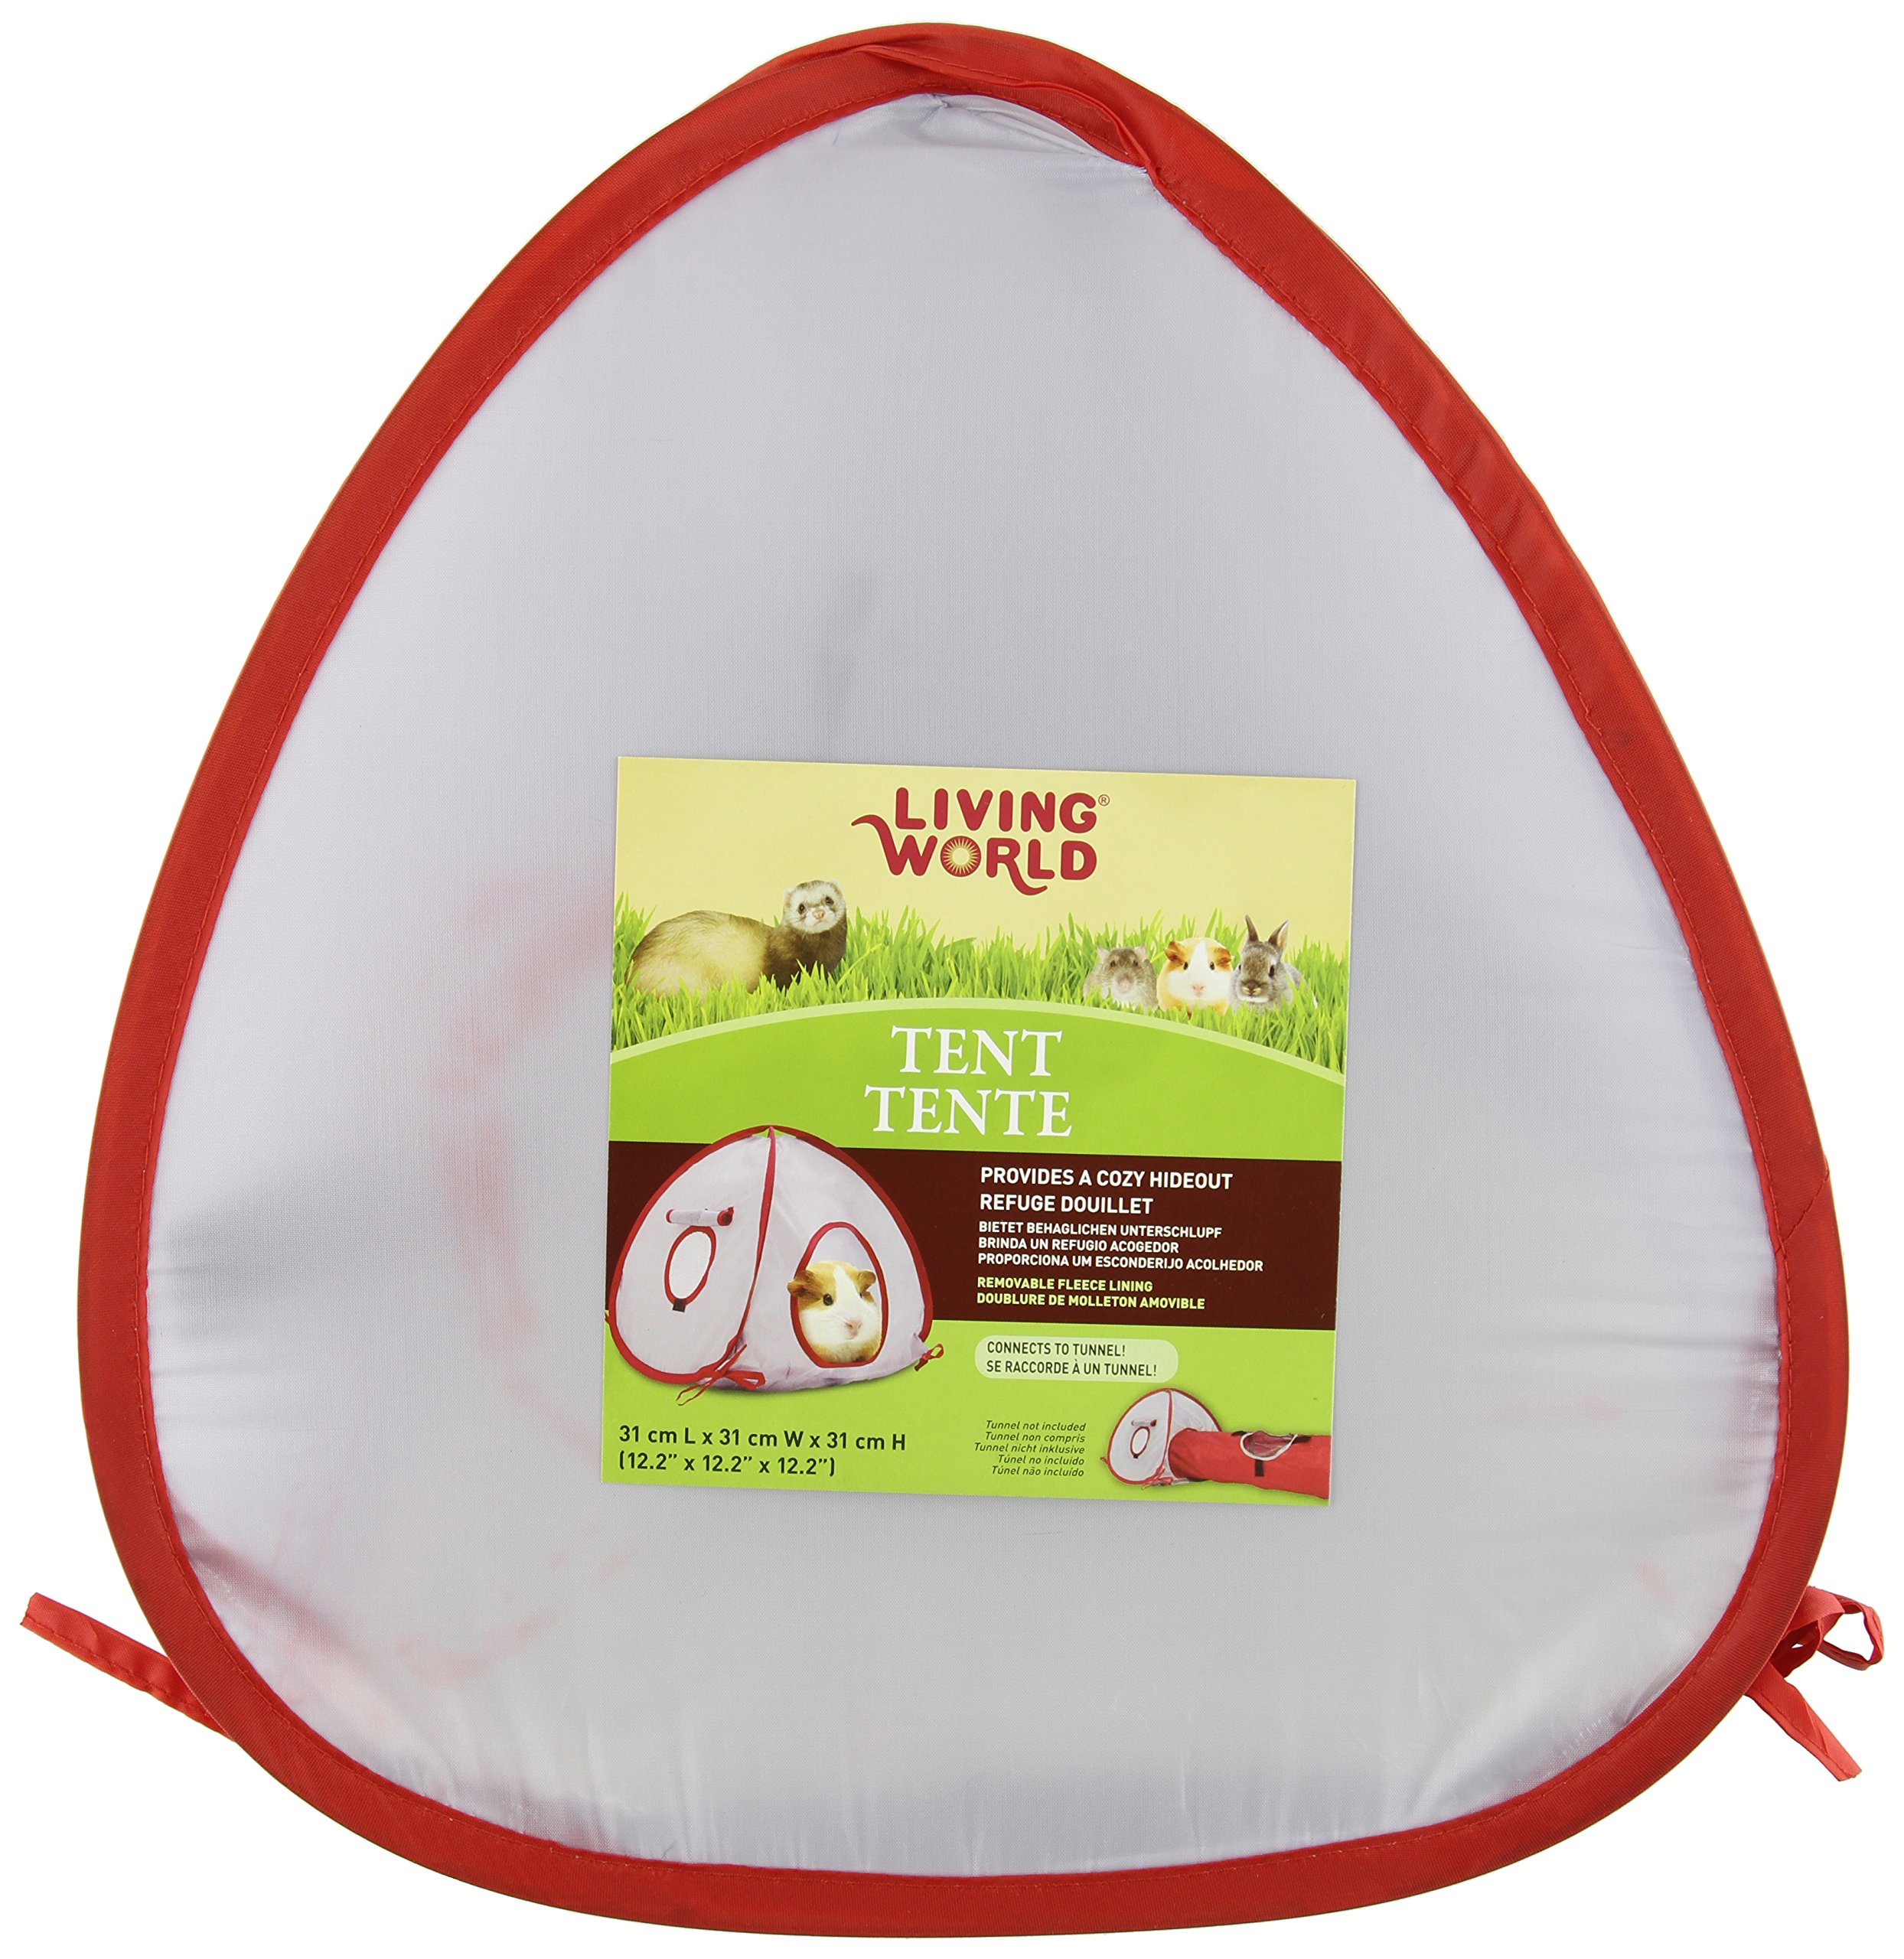 Living World Tent for Pets, Grey/Red